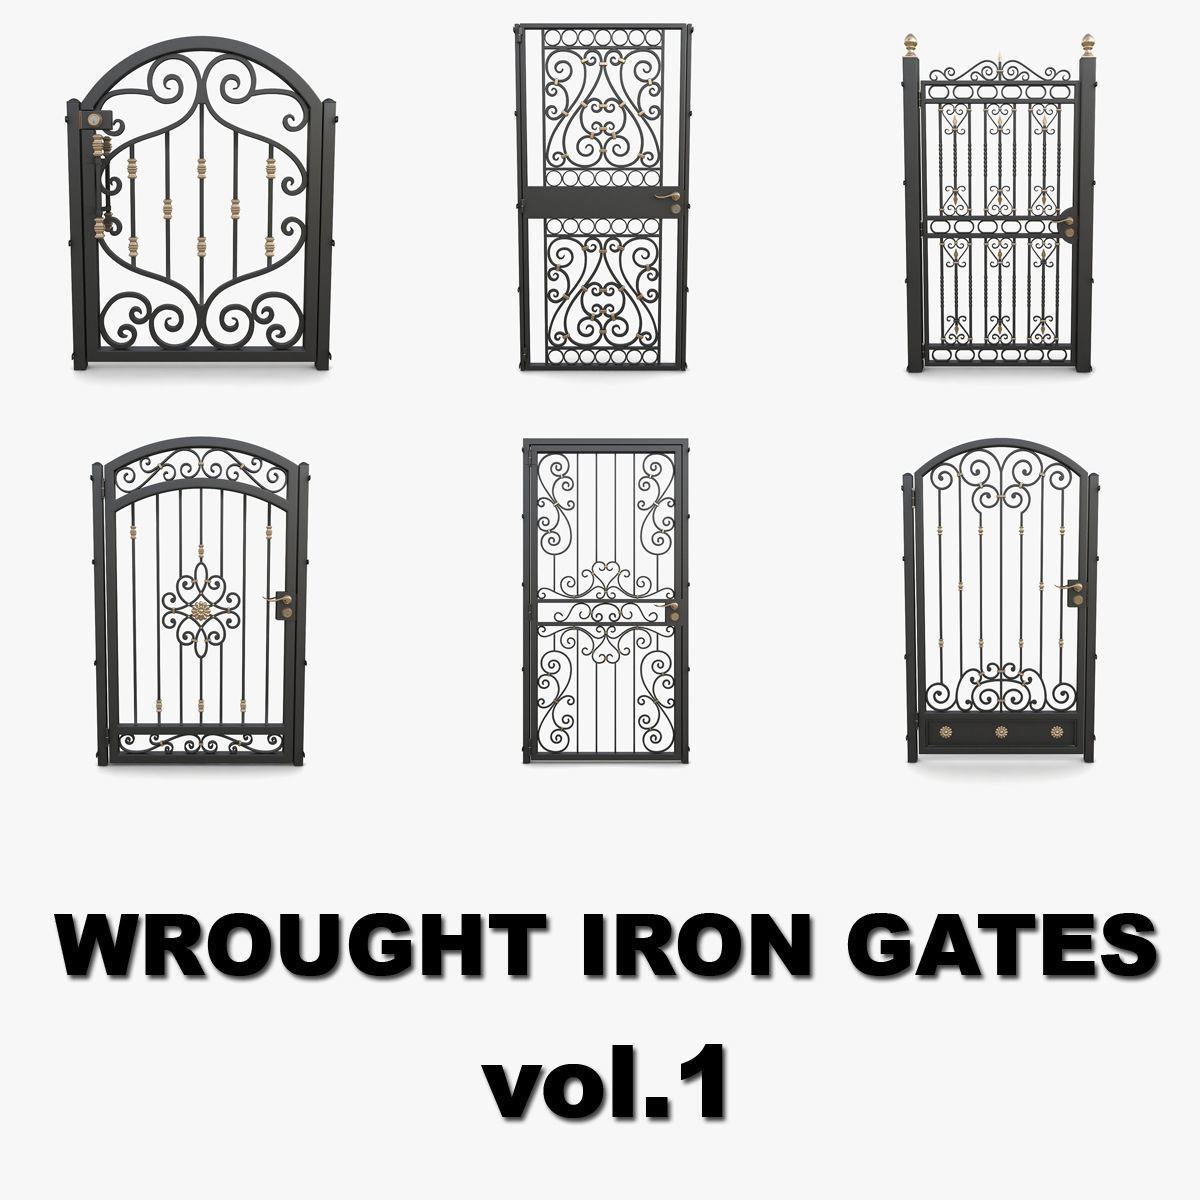 Wrought iron gates collection vol1